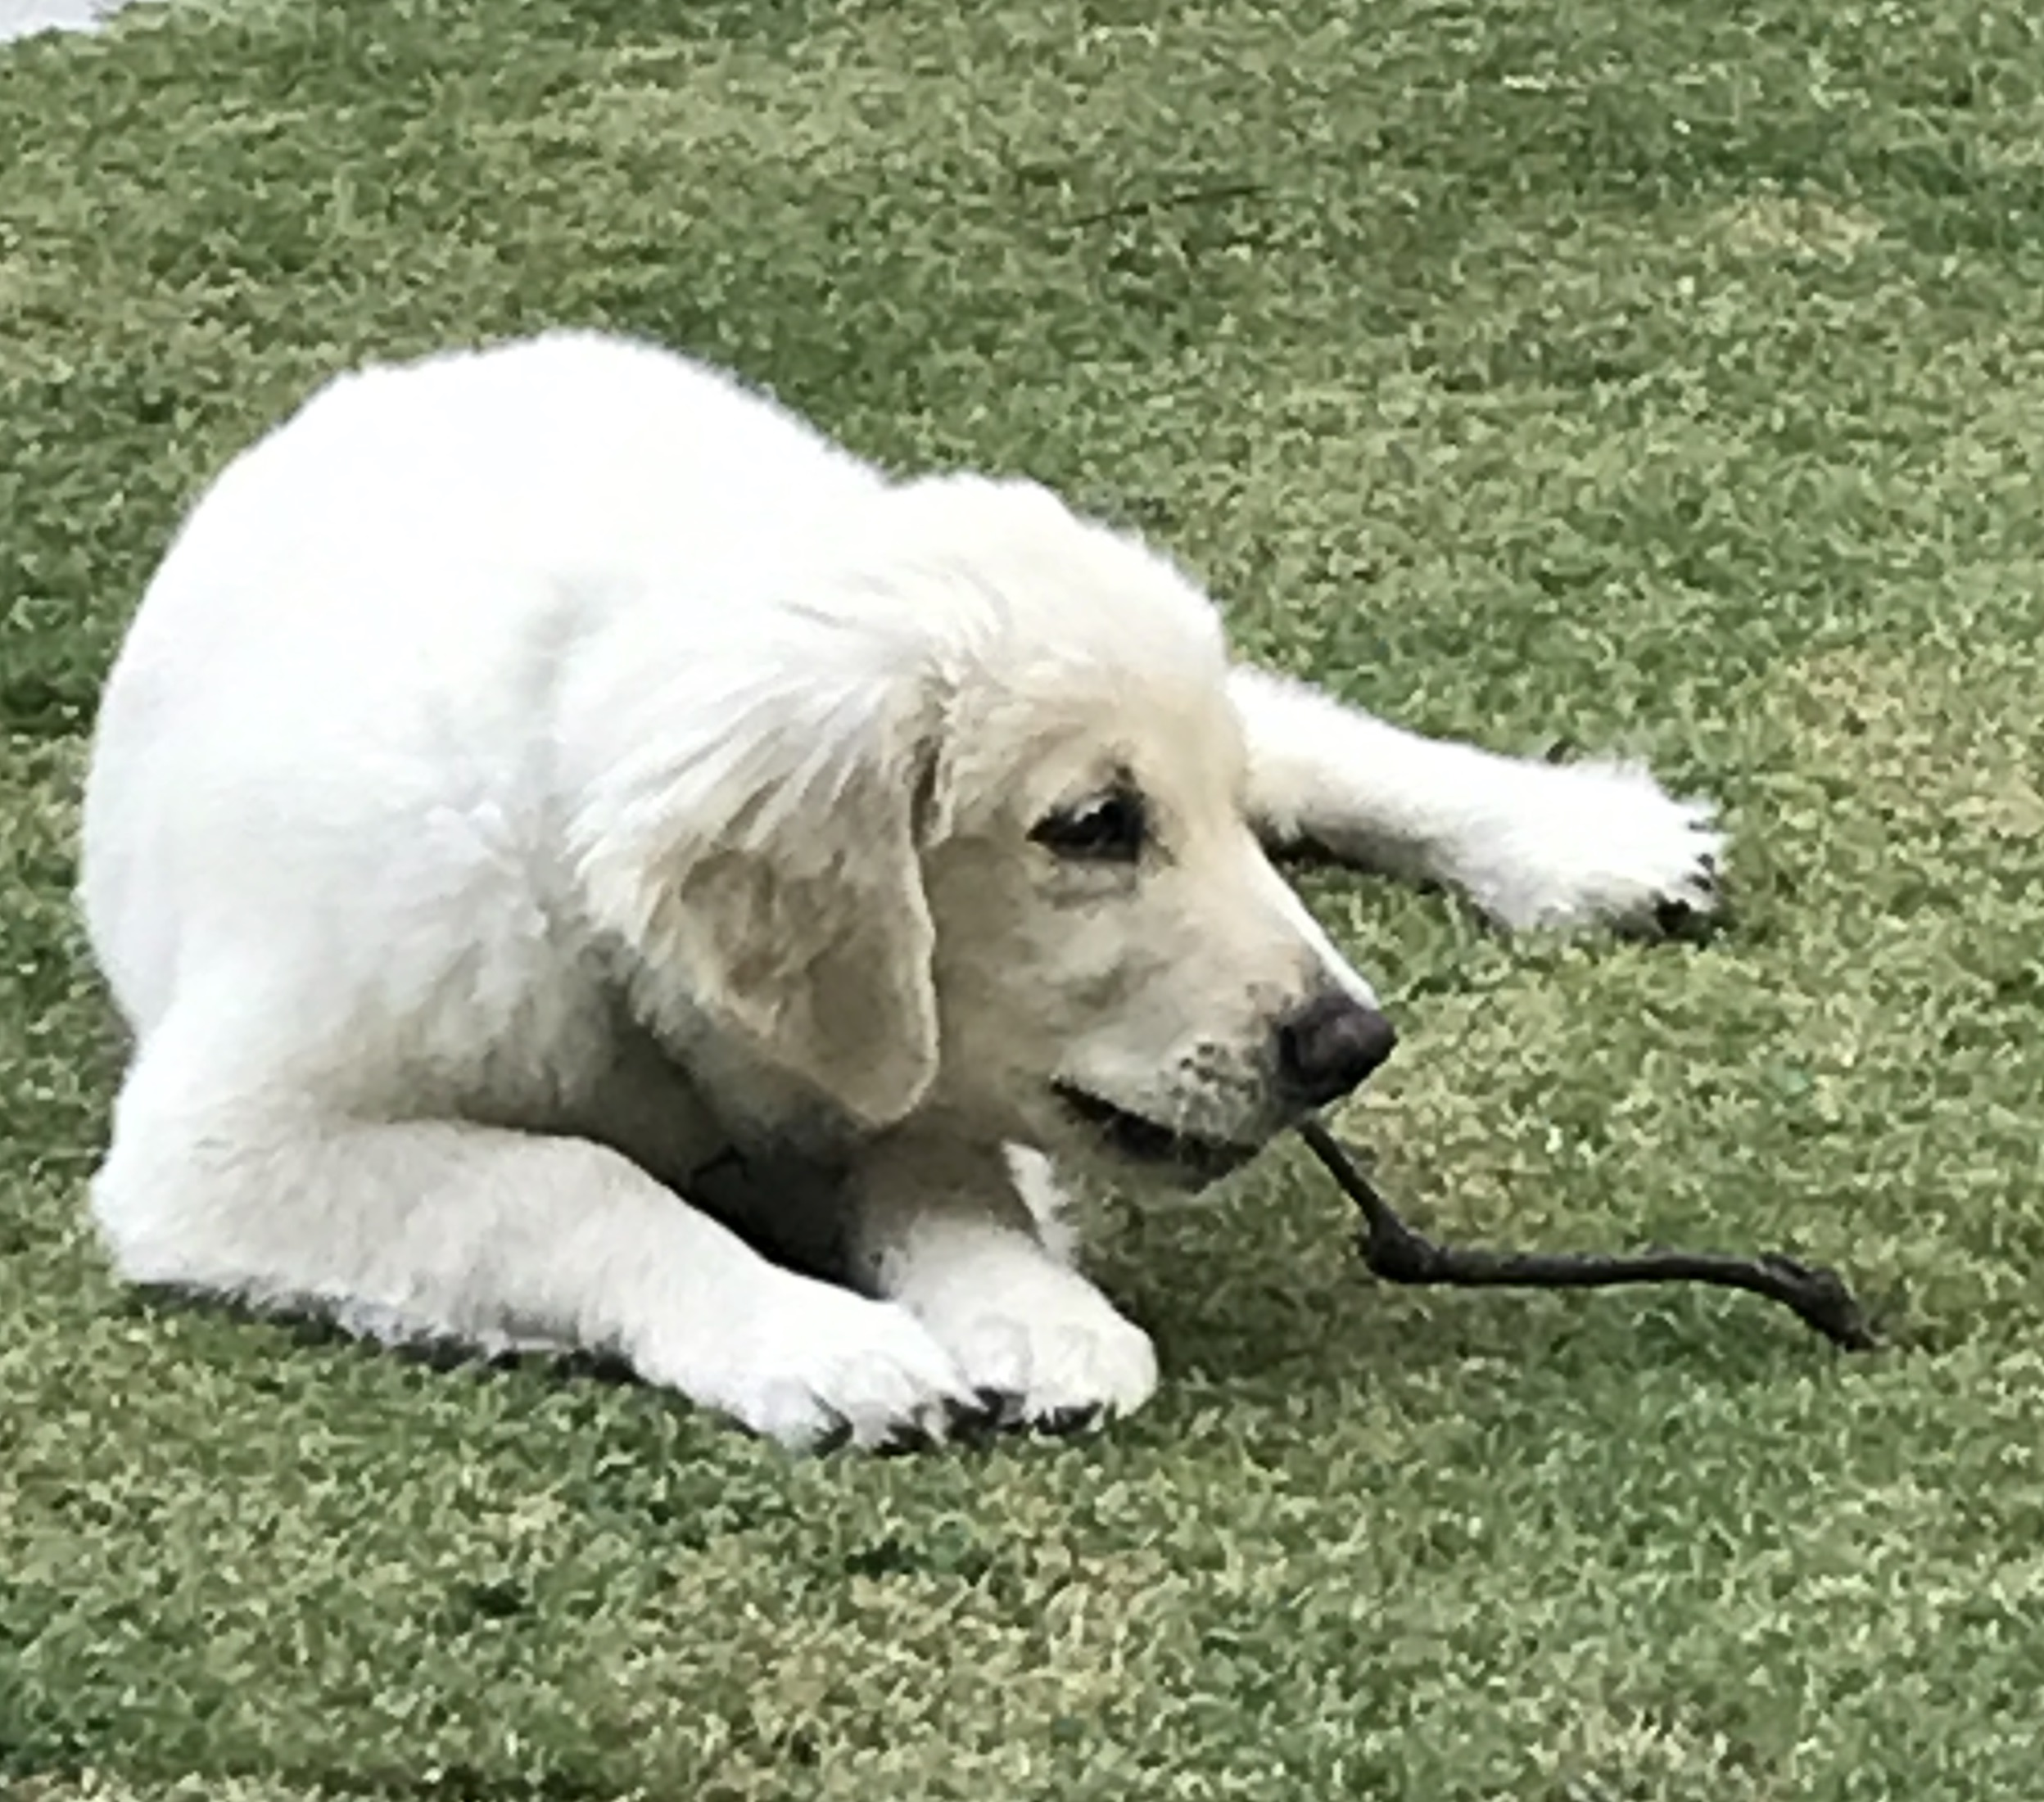 June 30 2017 Neo with a stick